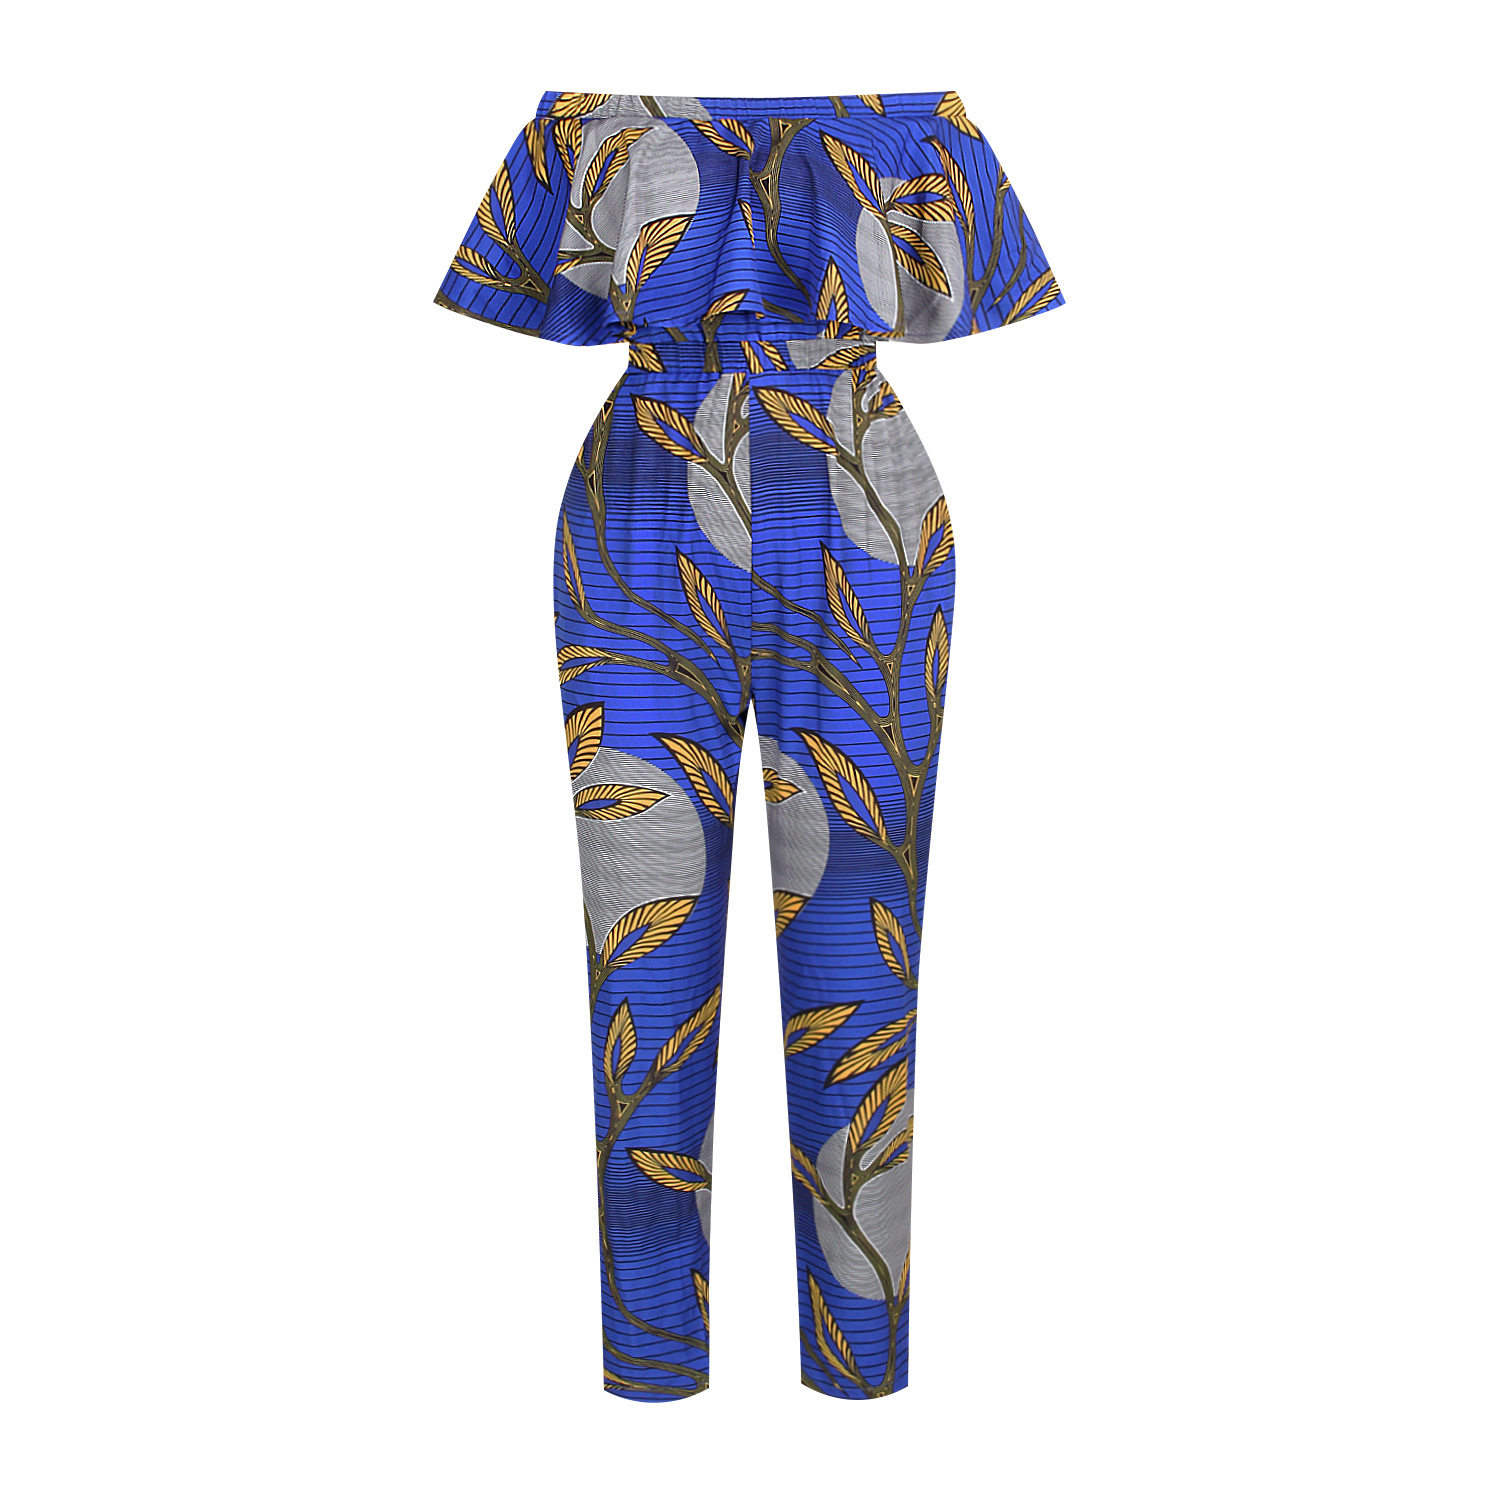 Closeout Deals┬Summer Print Women's Clothing Shoulder Sexy Jumpsuits Ruffled Bra Pants Wholesale